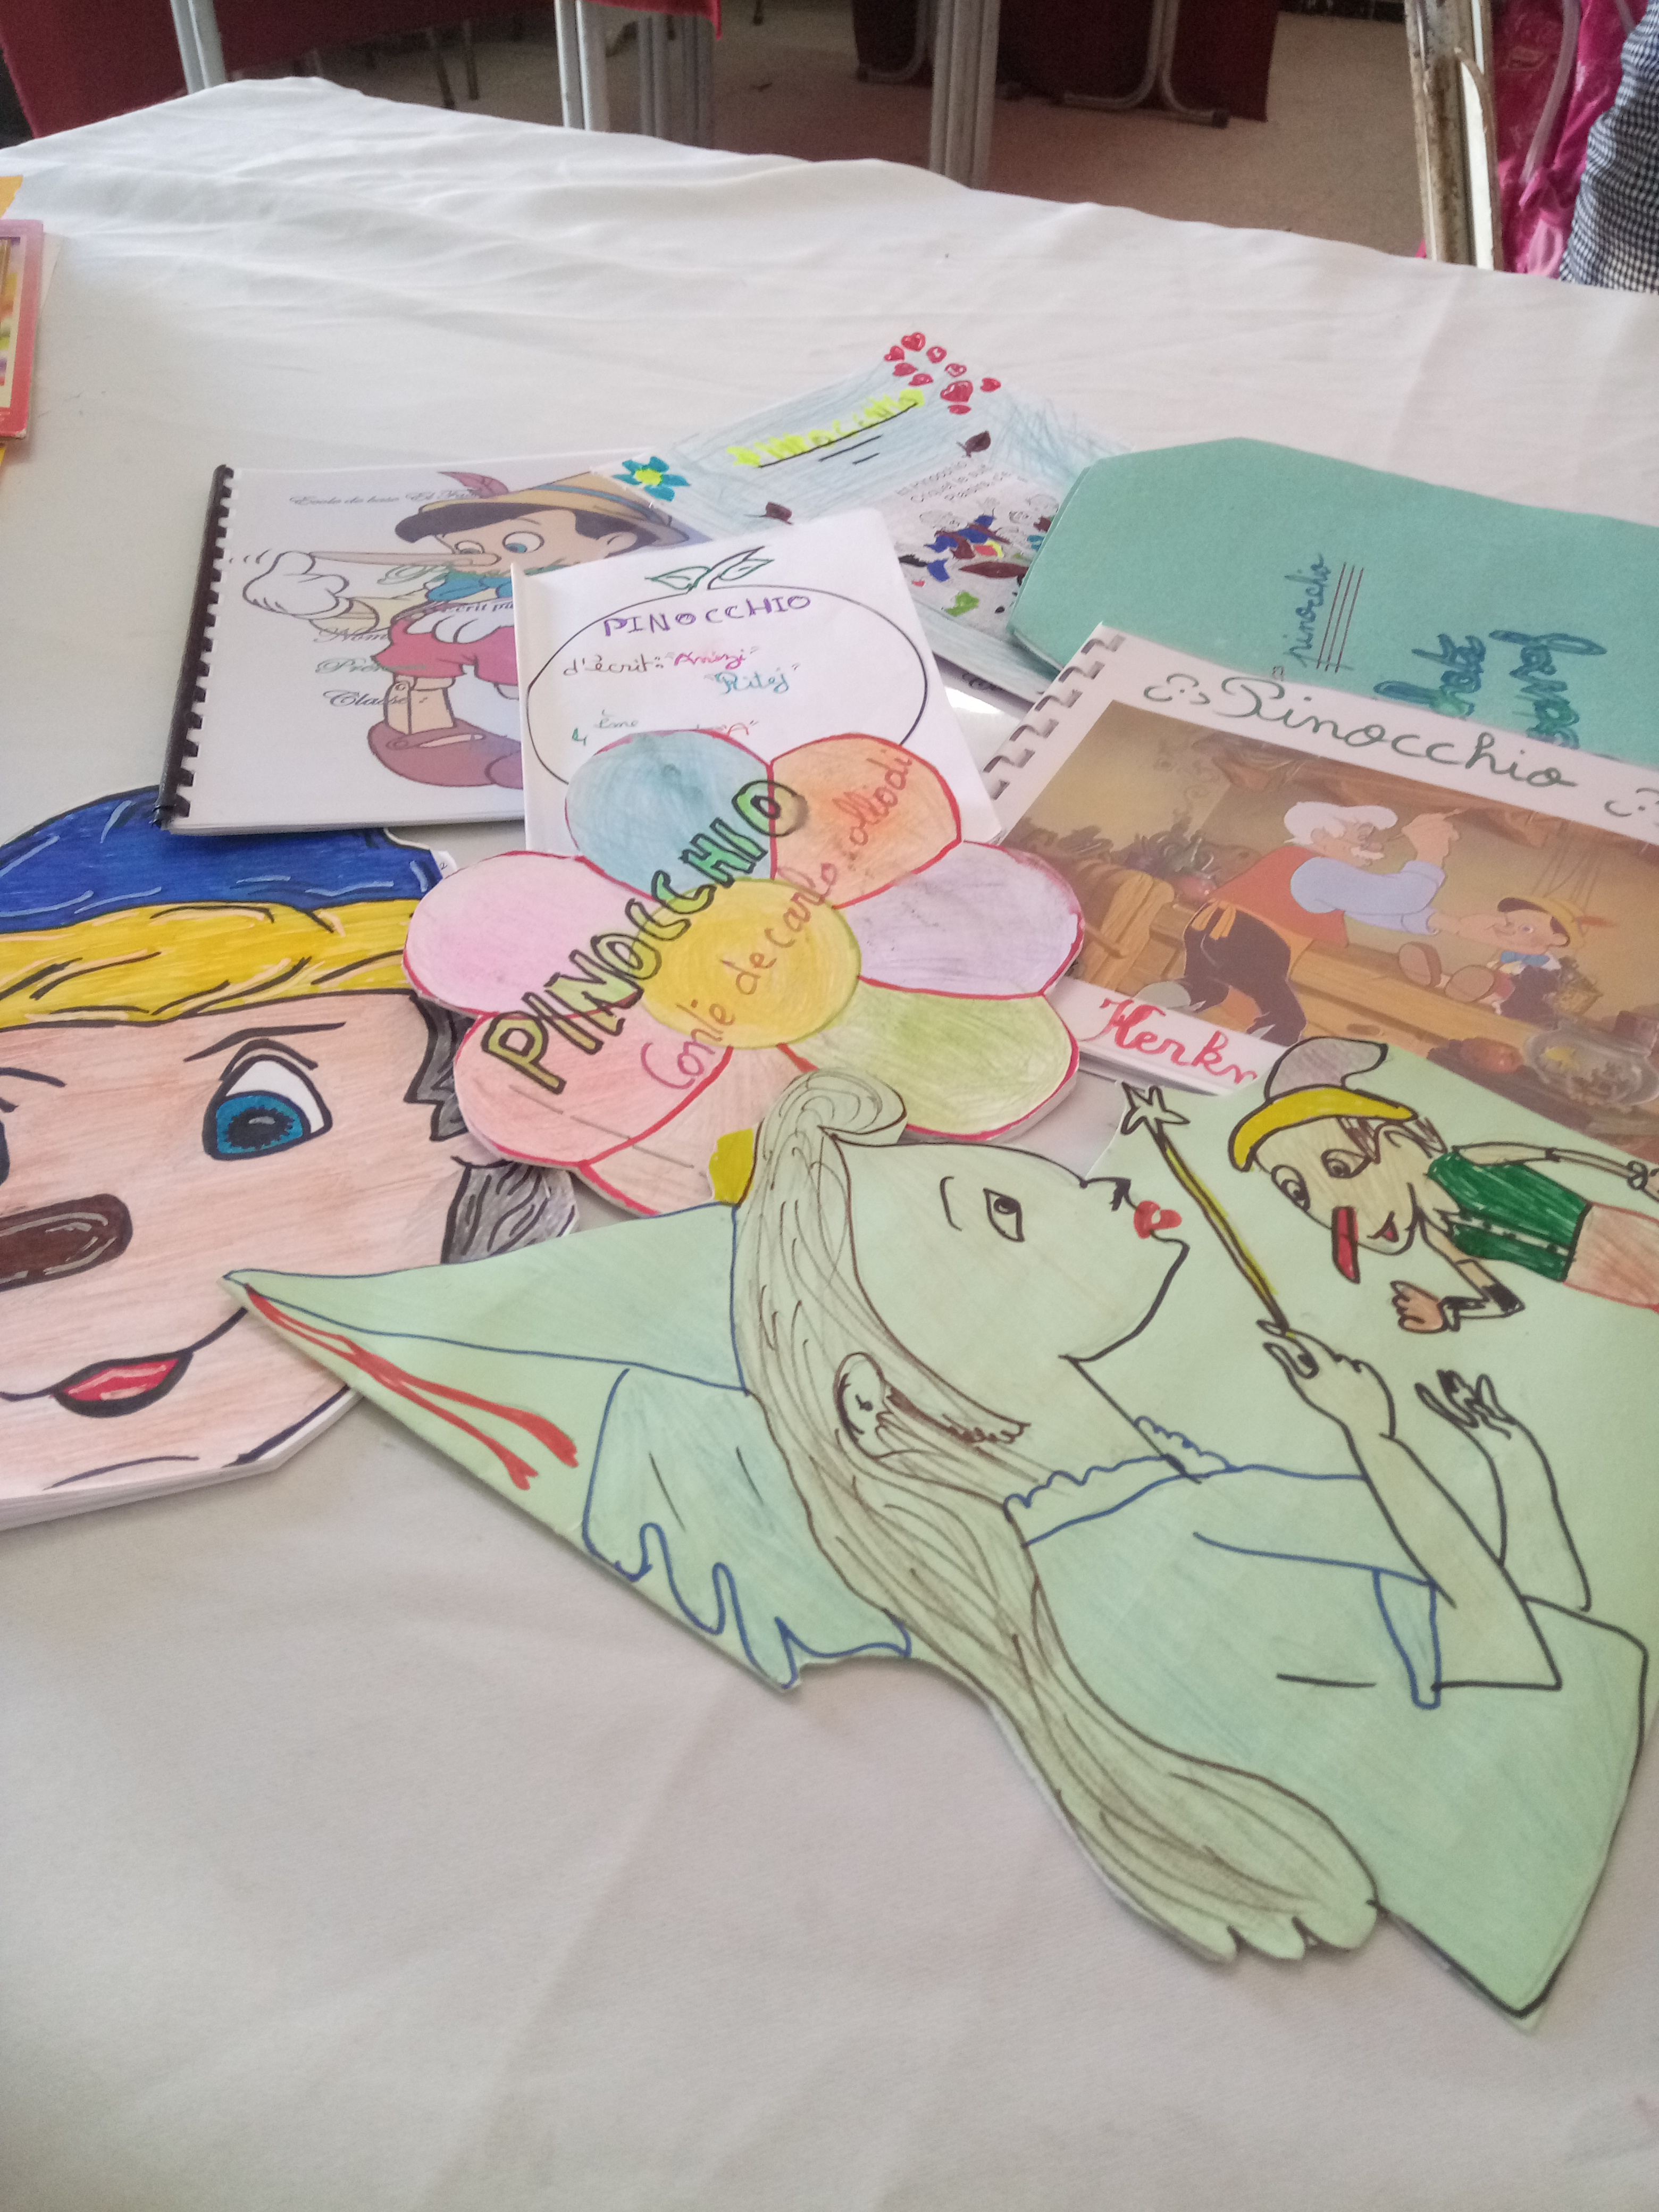 Pinocchio by Maha Omezine - Illustrated by students - Ourboox.com